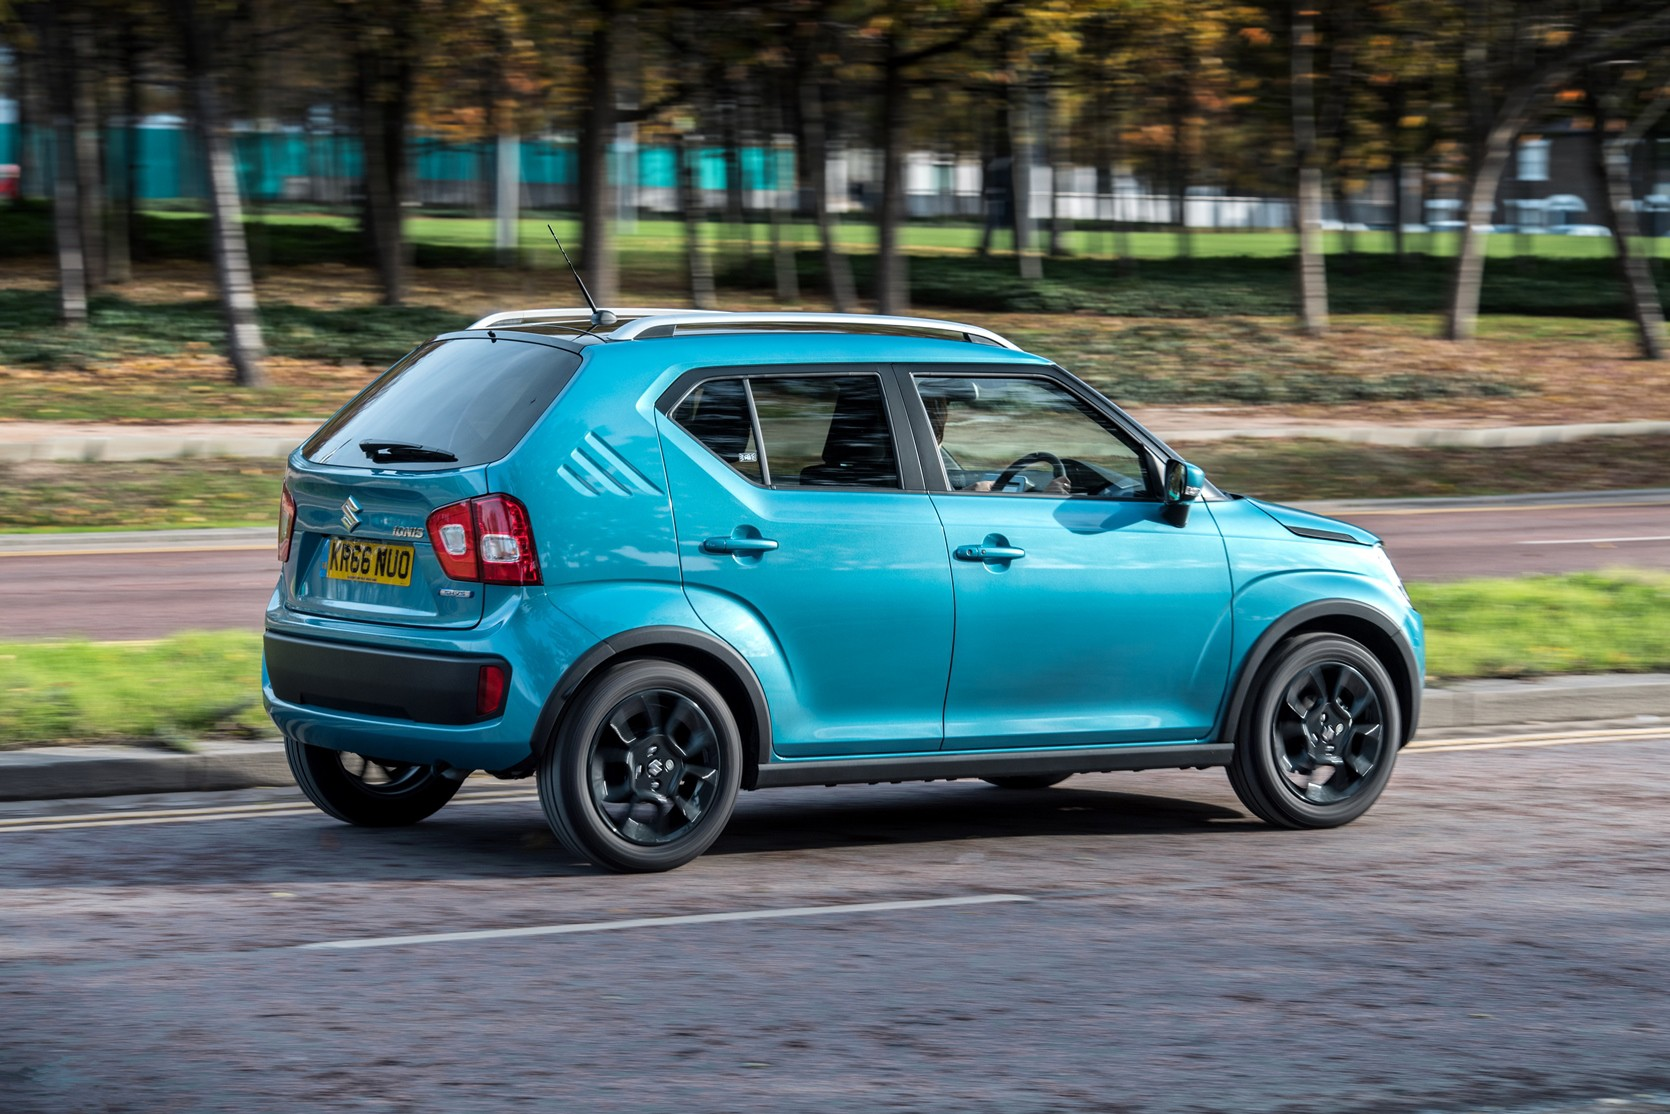 Welcome back Whizzkid in the latest Suzuki Ignis